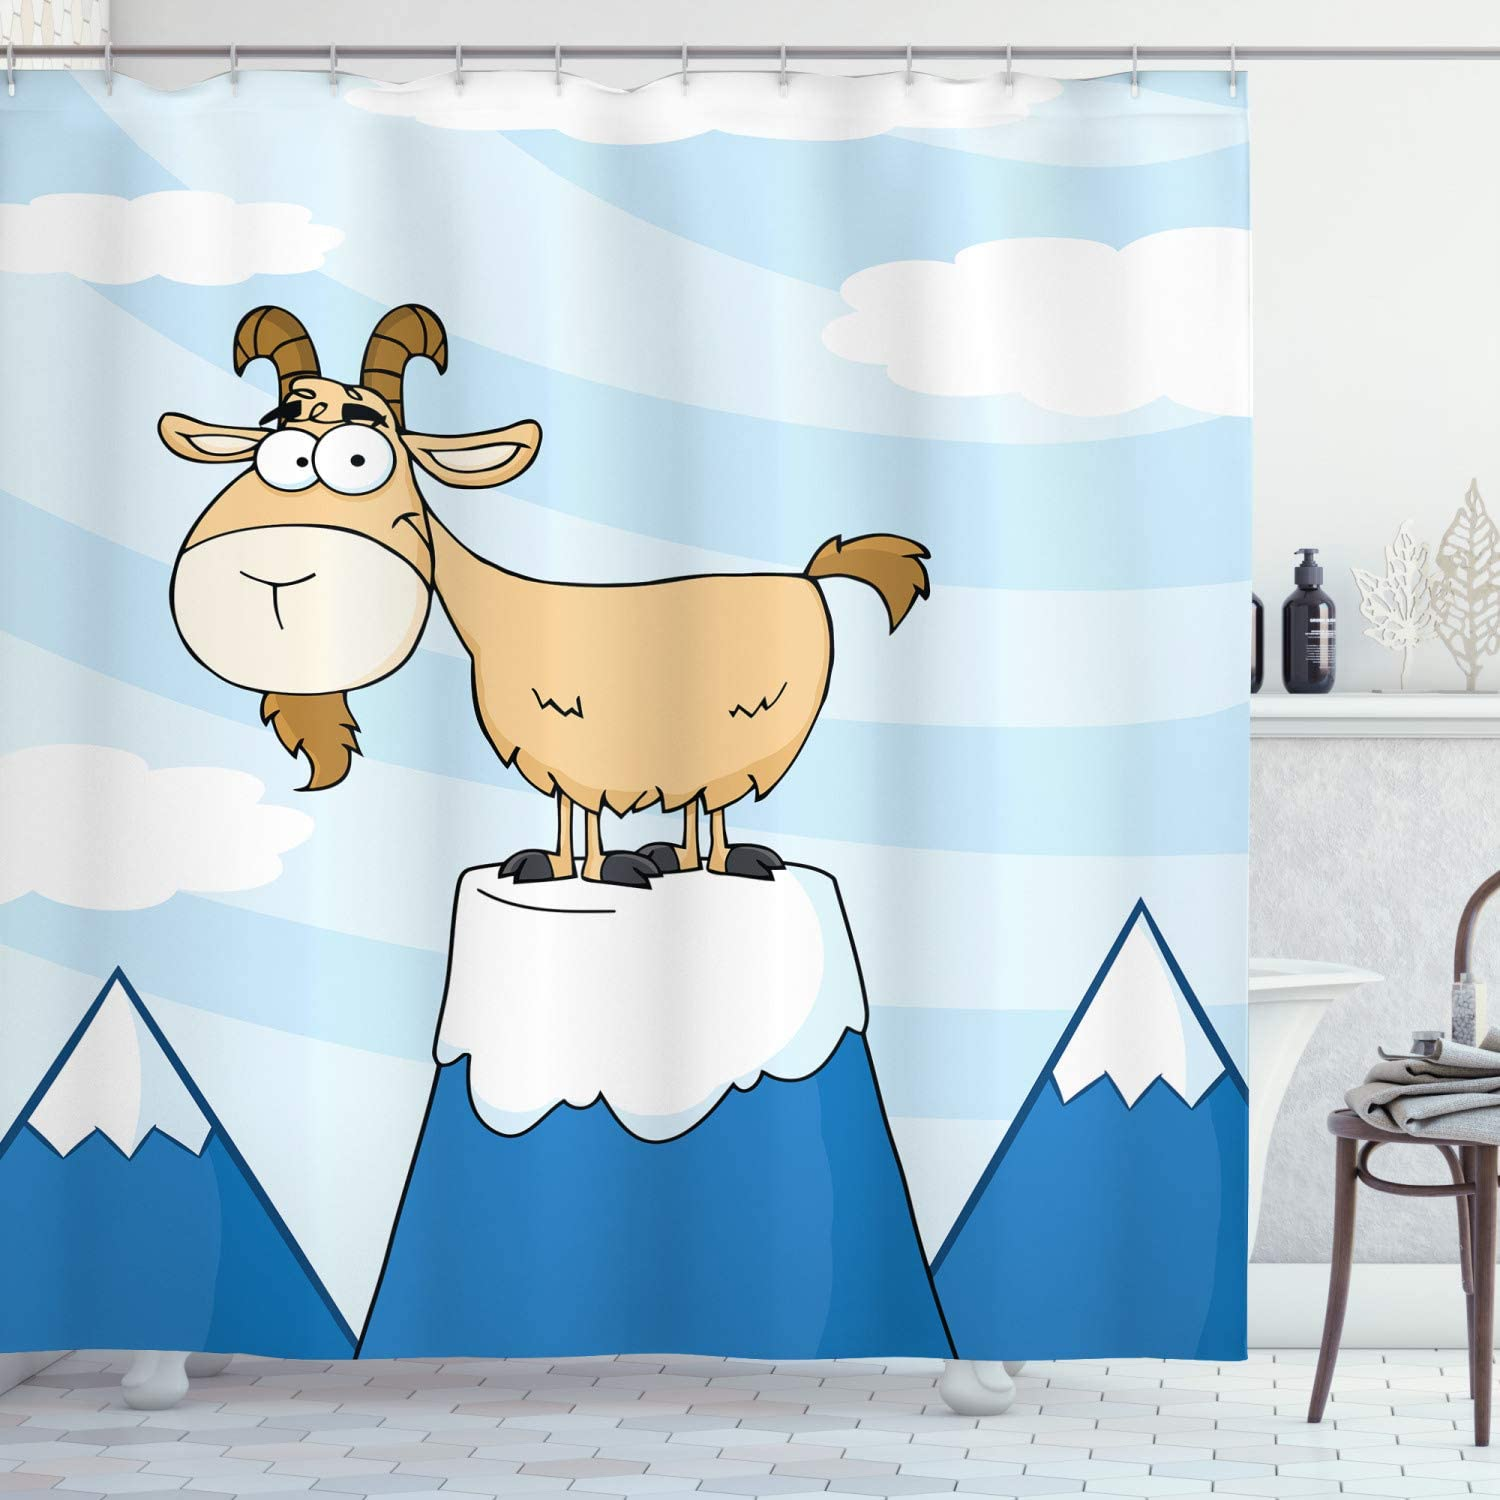 Abakuhaus Goat Shower Curtain Doodle Cartoon Goat Smiling And Standing On Top Of Mountain Pick Digital Illustration Cloth Fabric Bathroom Decor Set With Hooks 78 Inches Multicolor Amazon Co Uk Kitchen Home